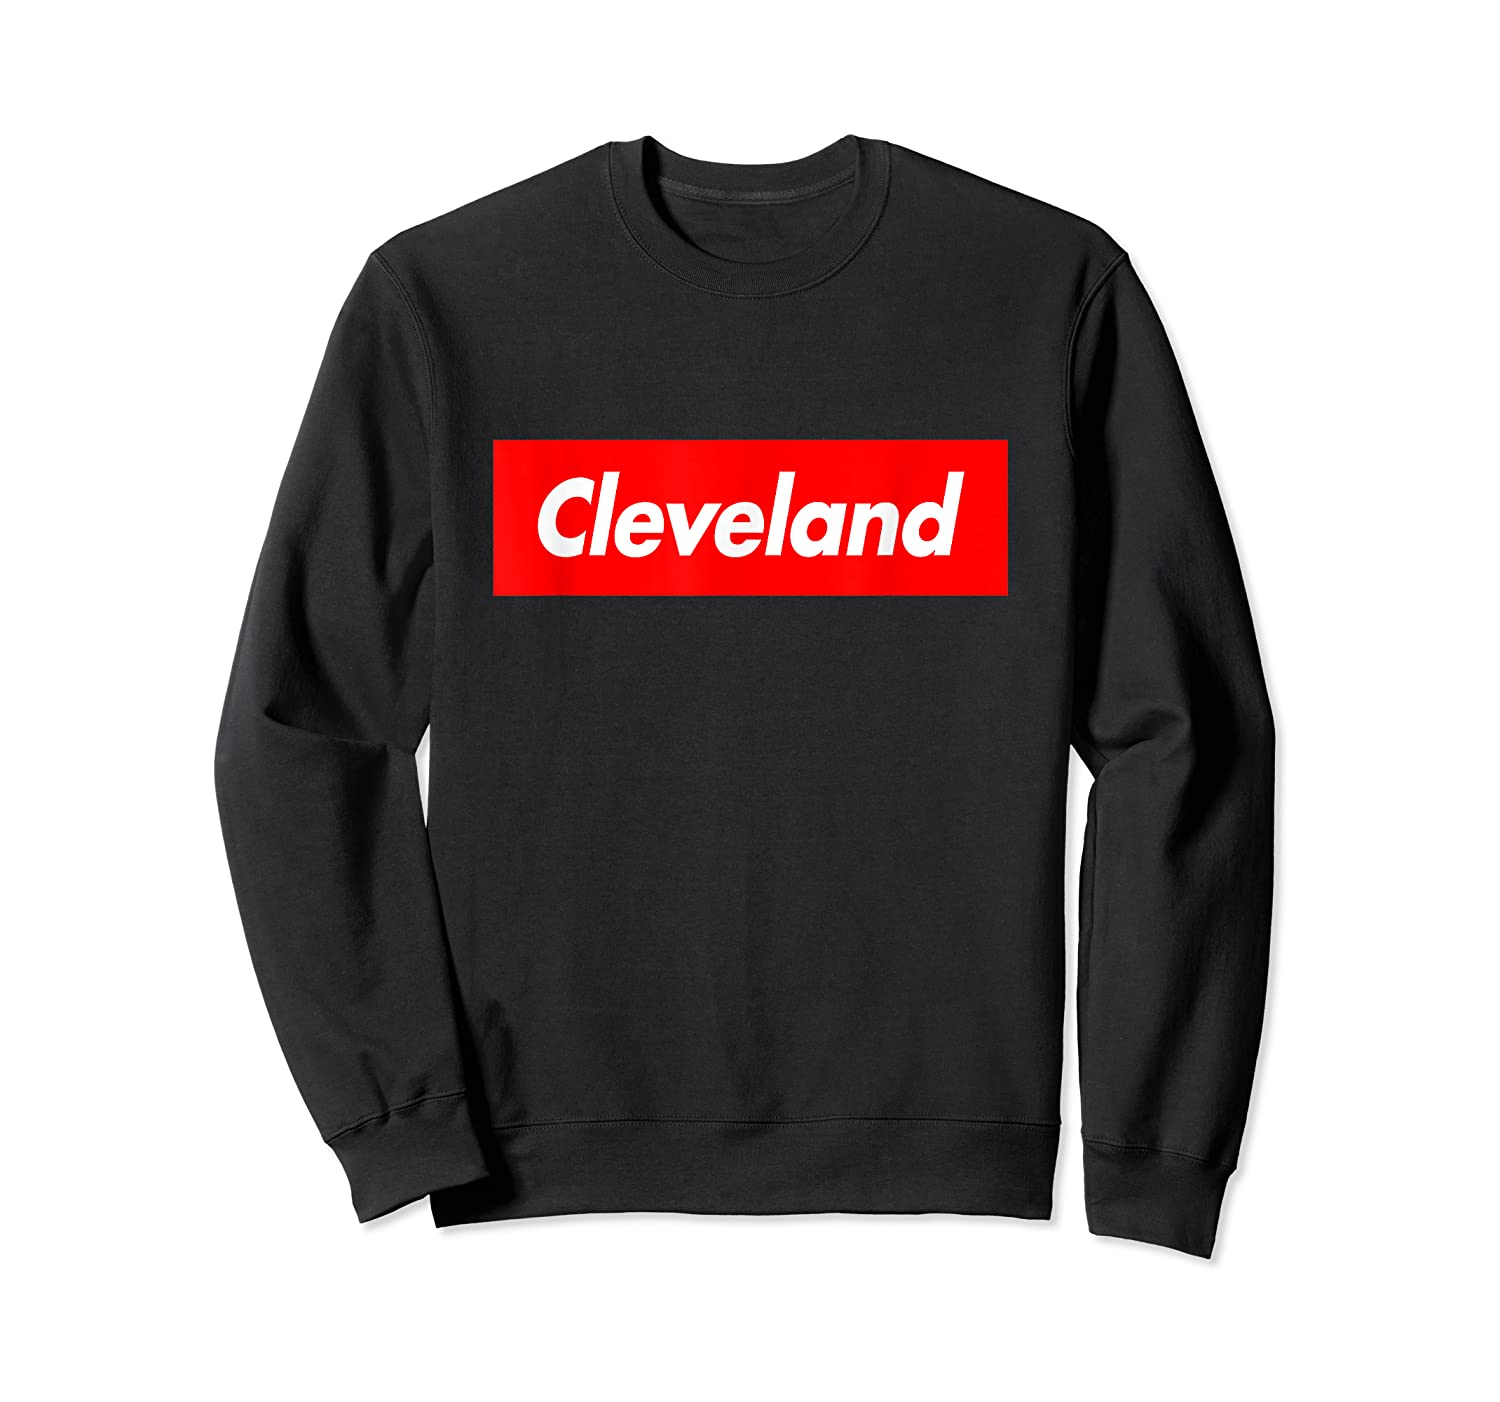 Cleveland Funny Red Box Logo Family First Last Name T-shirt Crewneck Sweater